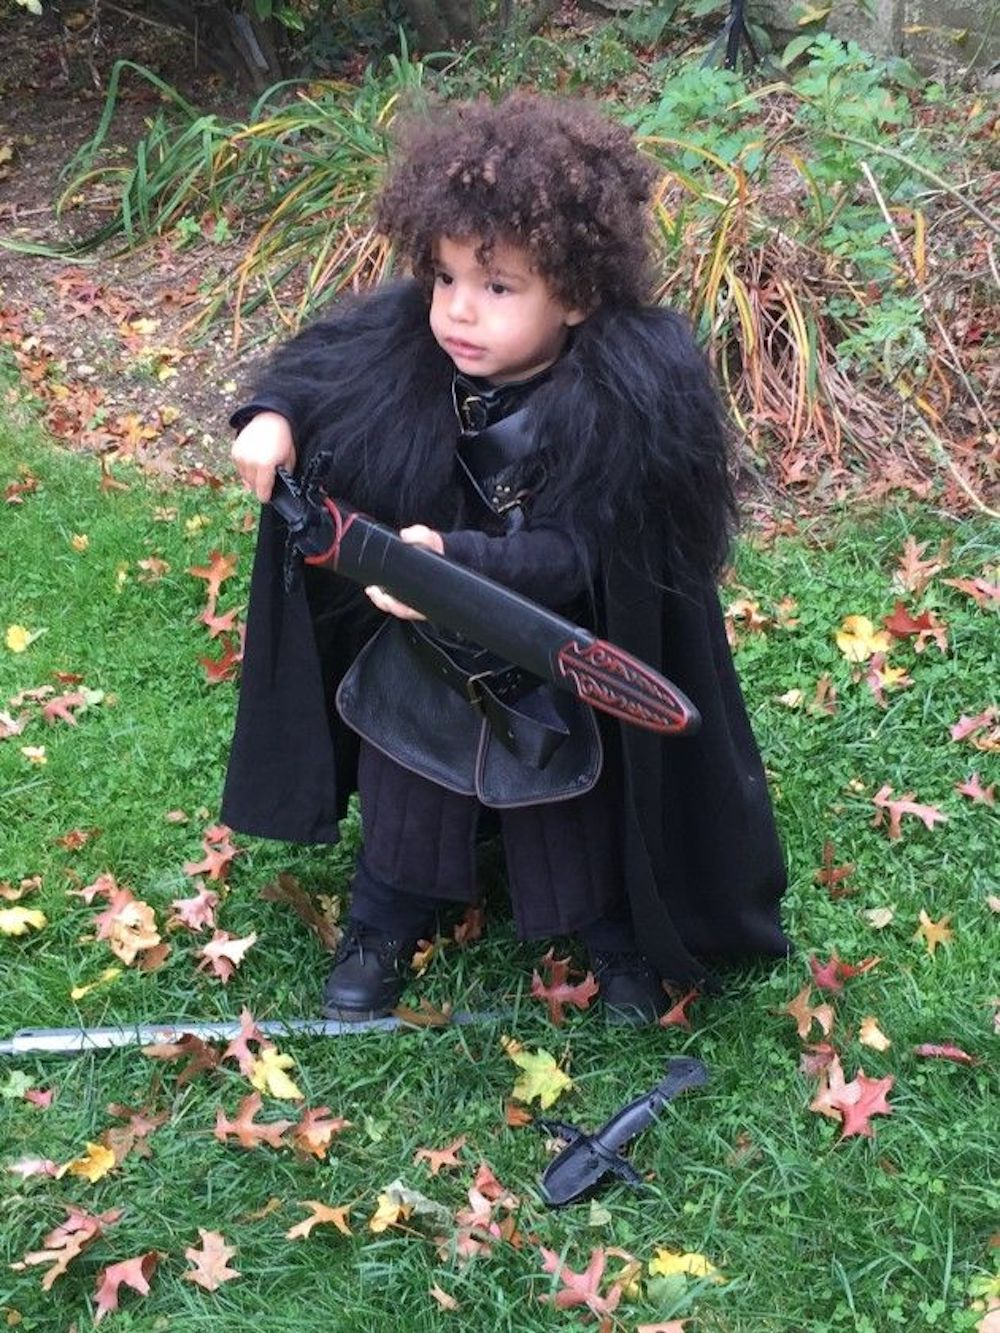 Kids' Game of Thrones costume ideas: How to make a Jon Snow costume on Winter is Coming